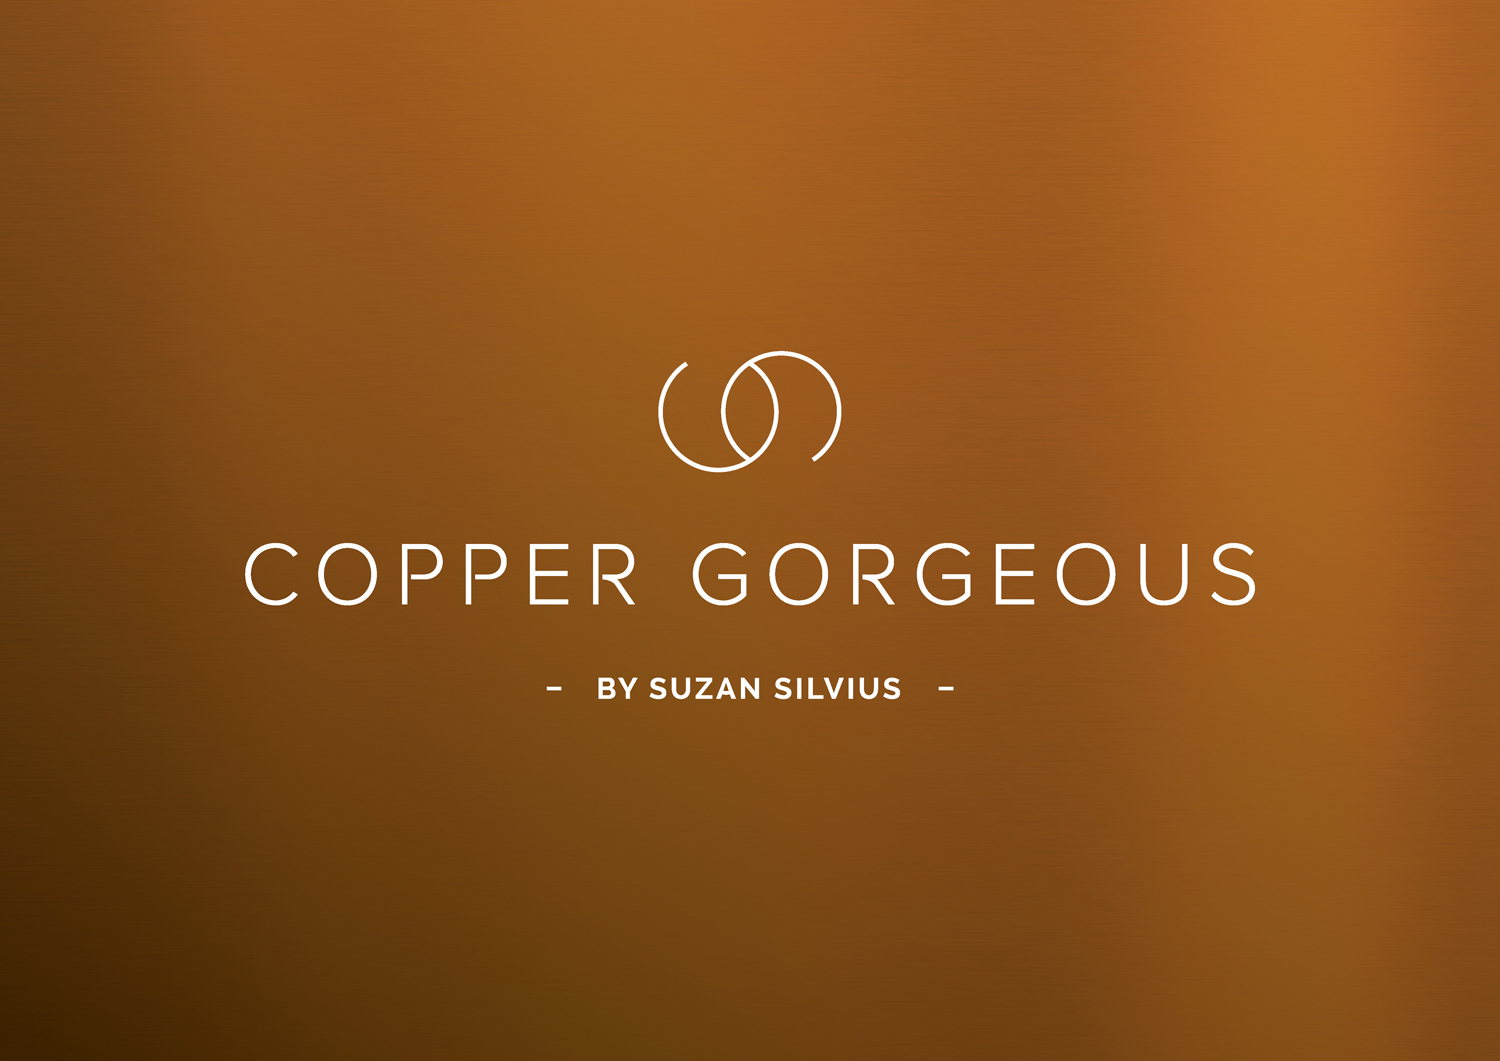 COPPER GORGEOUS